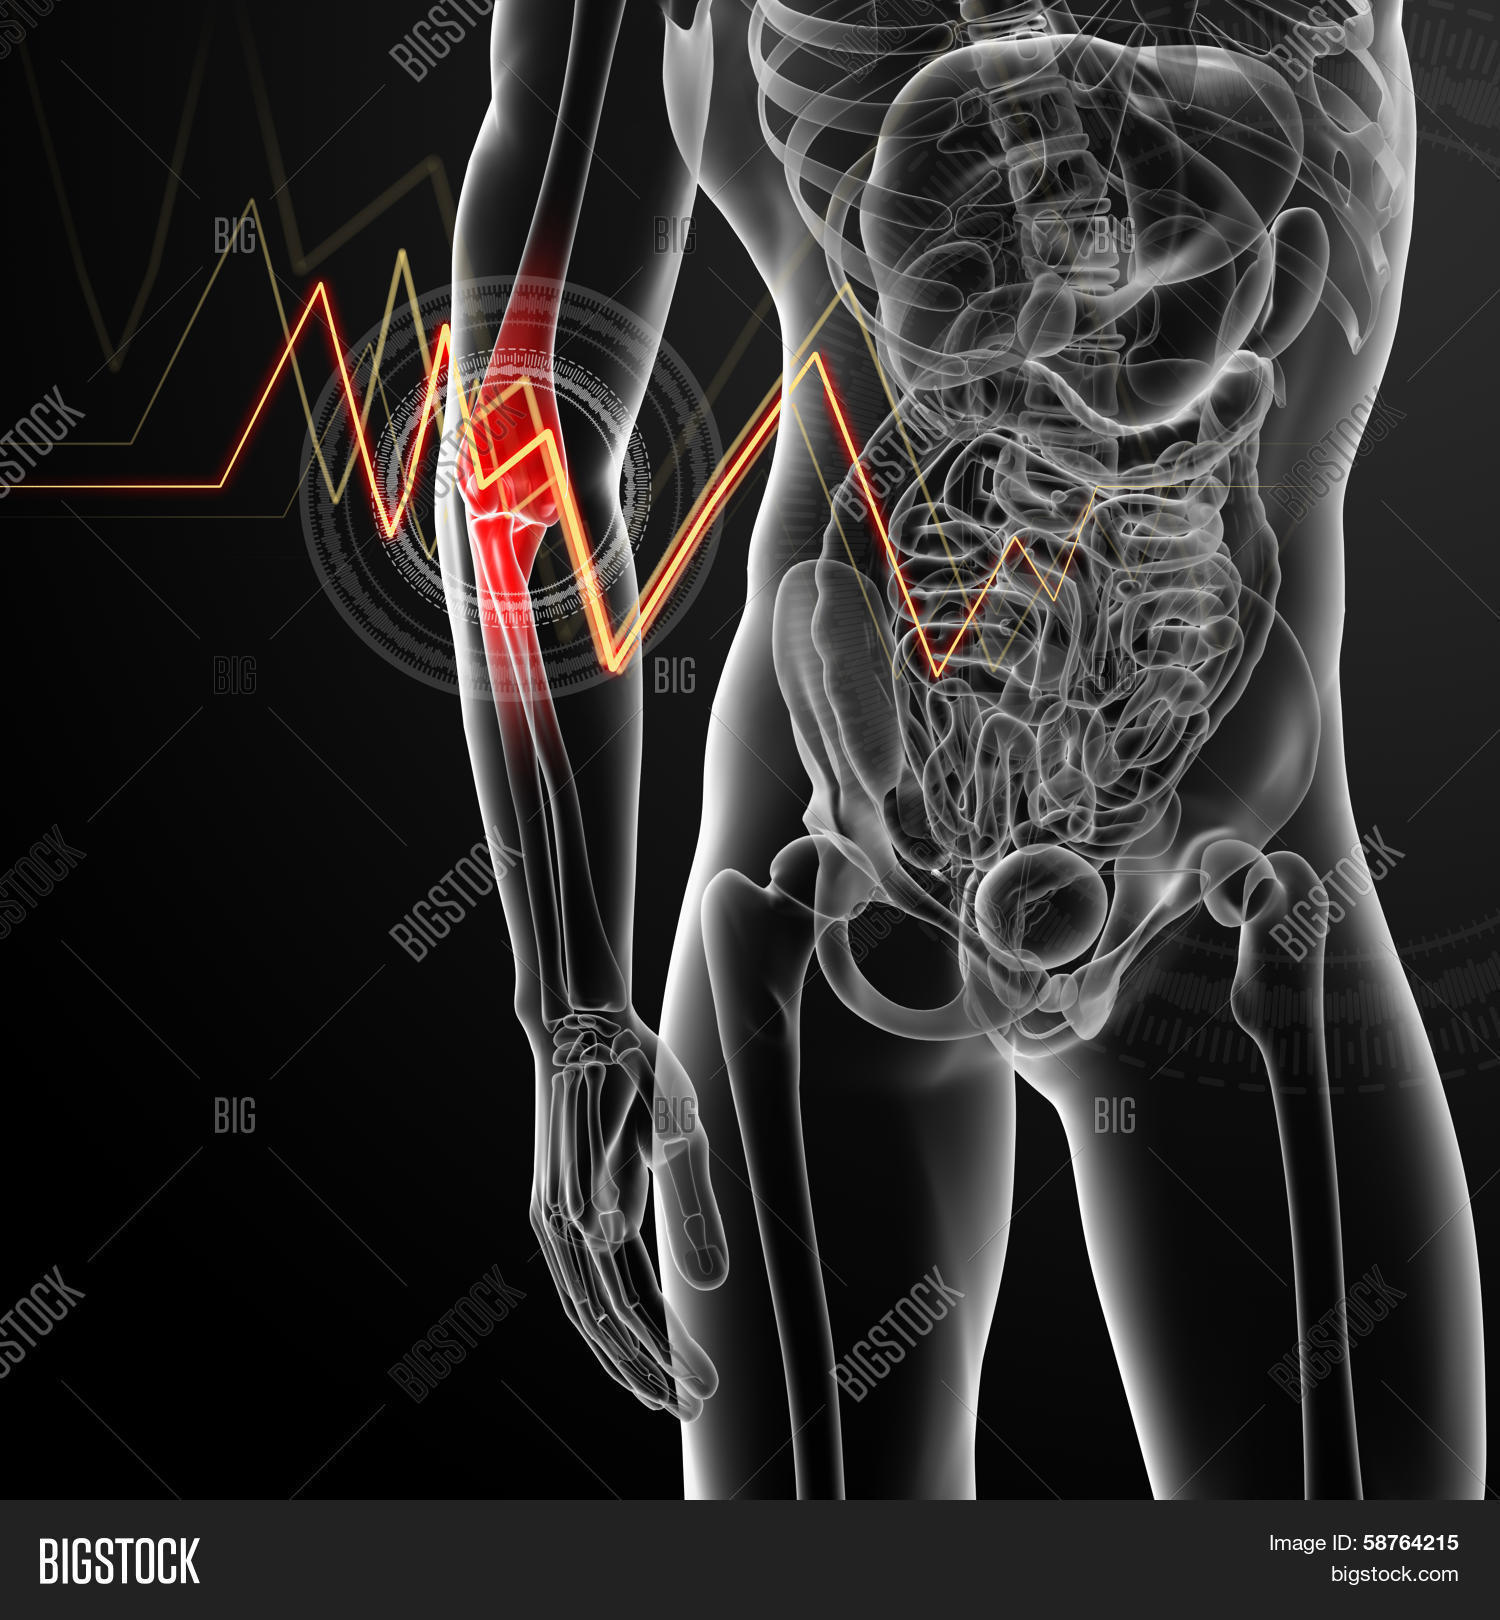 3d Render Illustration Elbow Pain Image & Photo | Bigstock